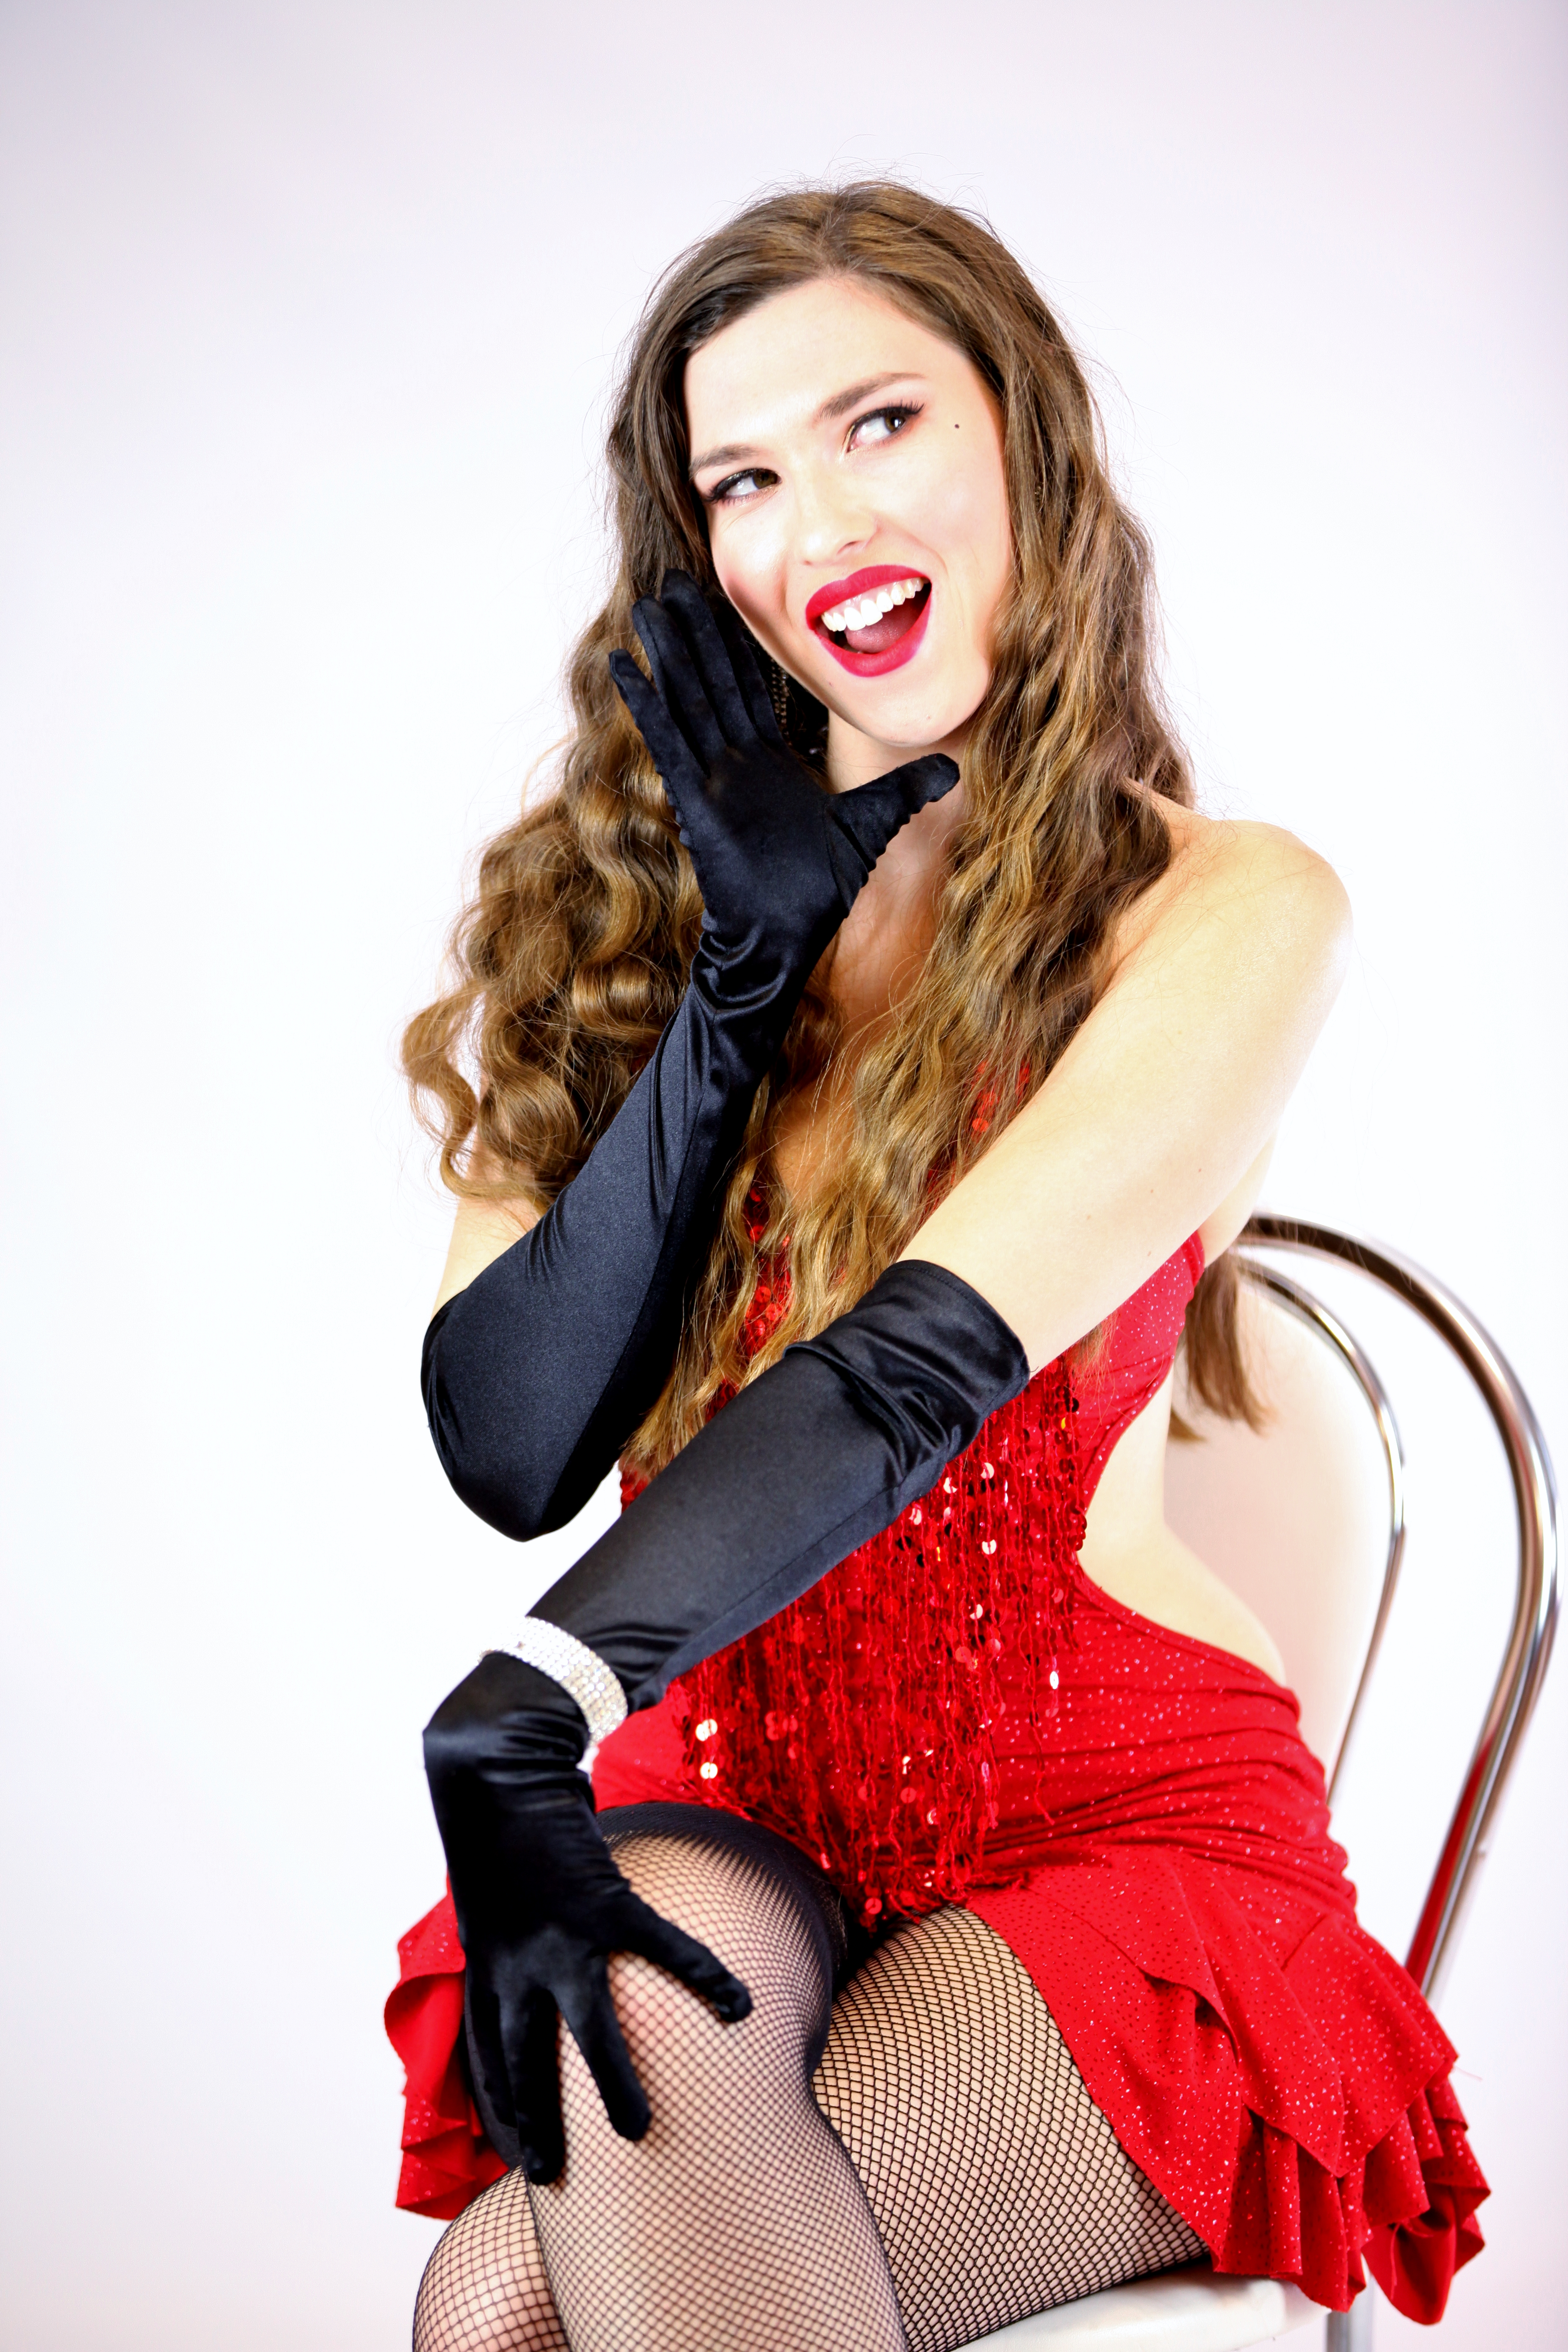 Camille Burlesque Photo by Karin Lux LuxlightartJPG